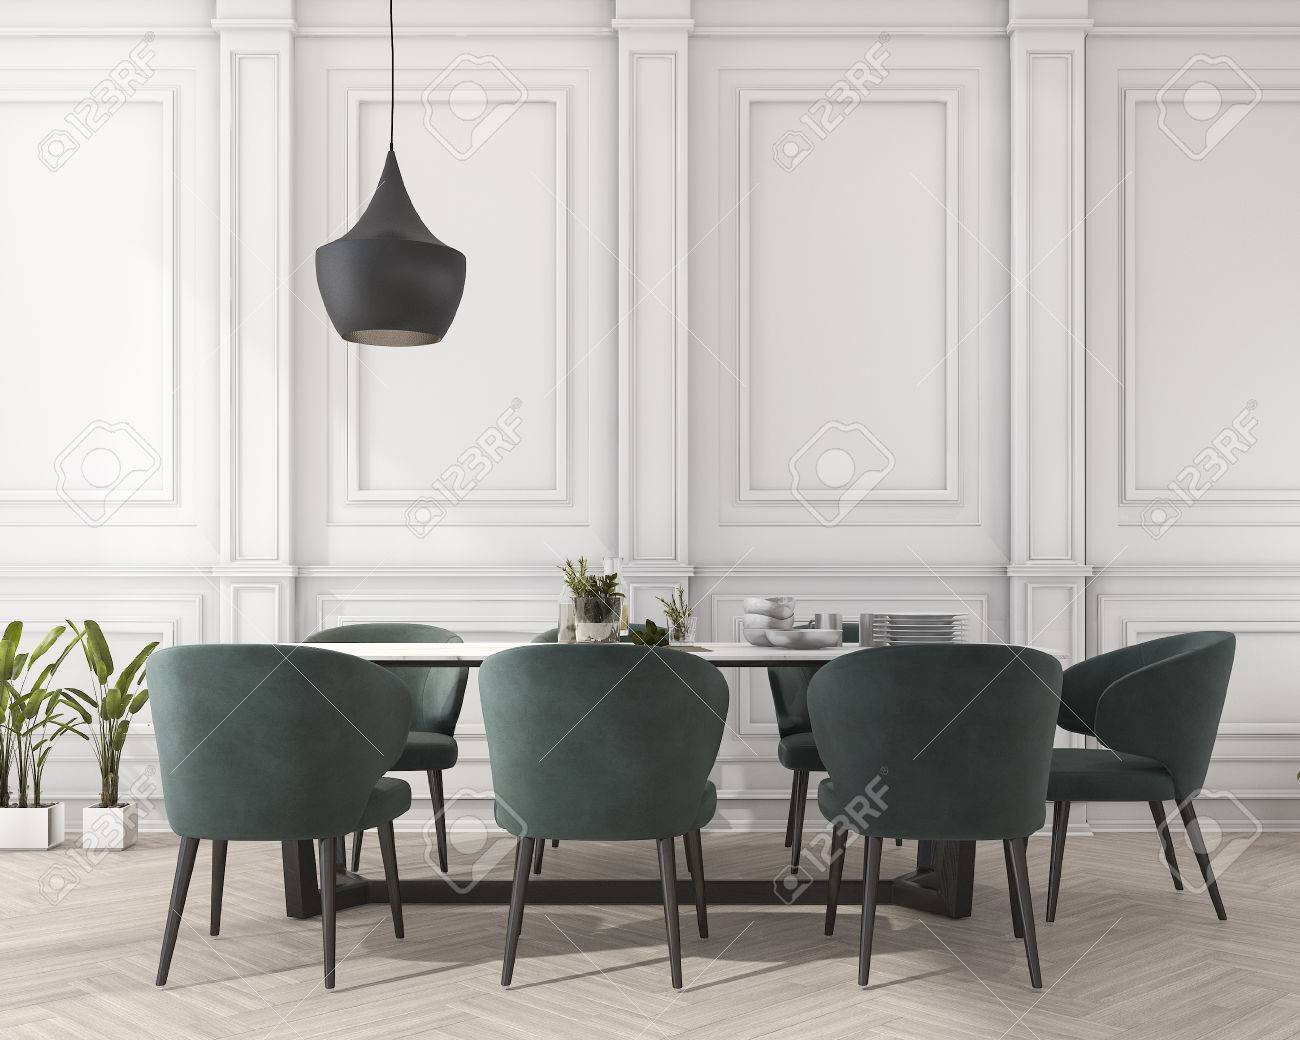 3d rendering classic dining table in white dining room